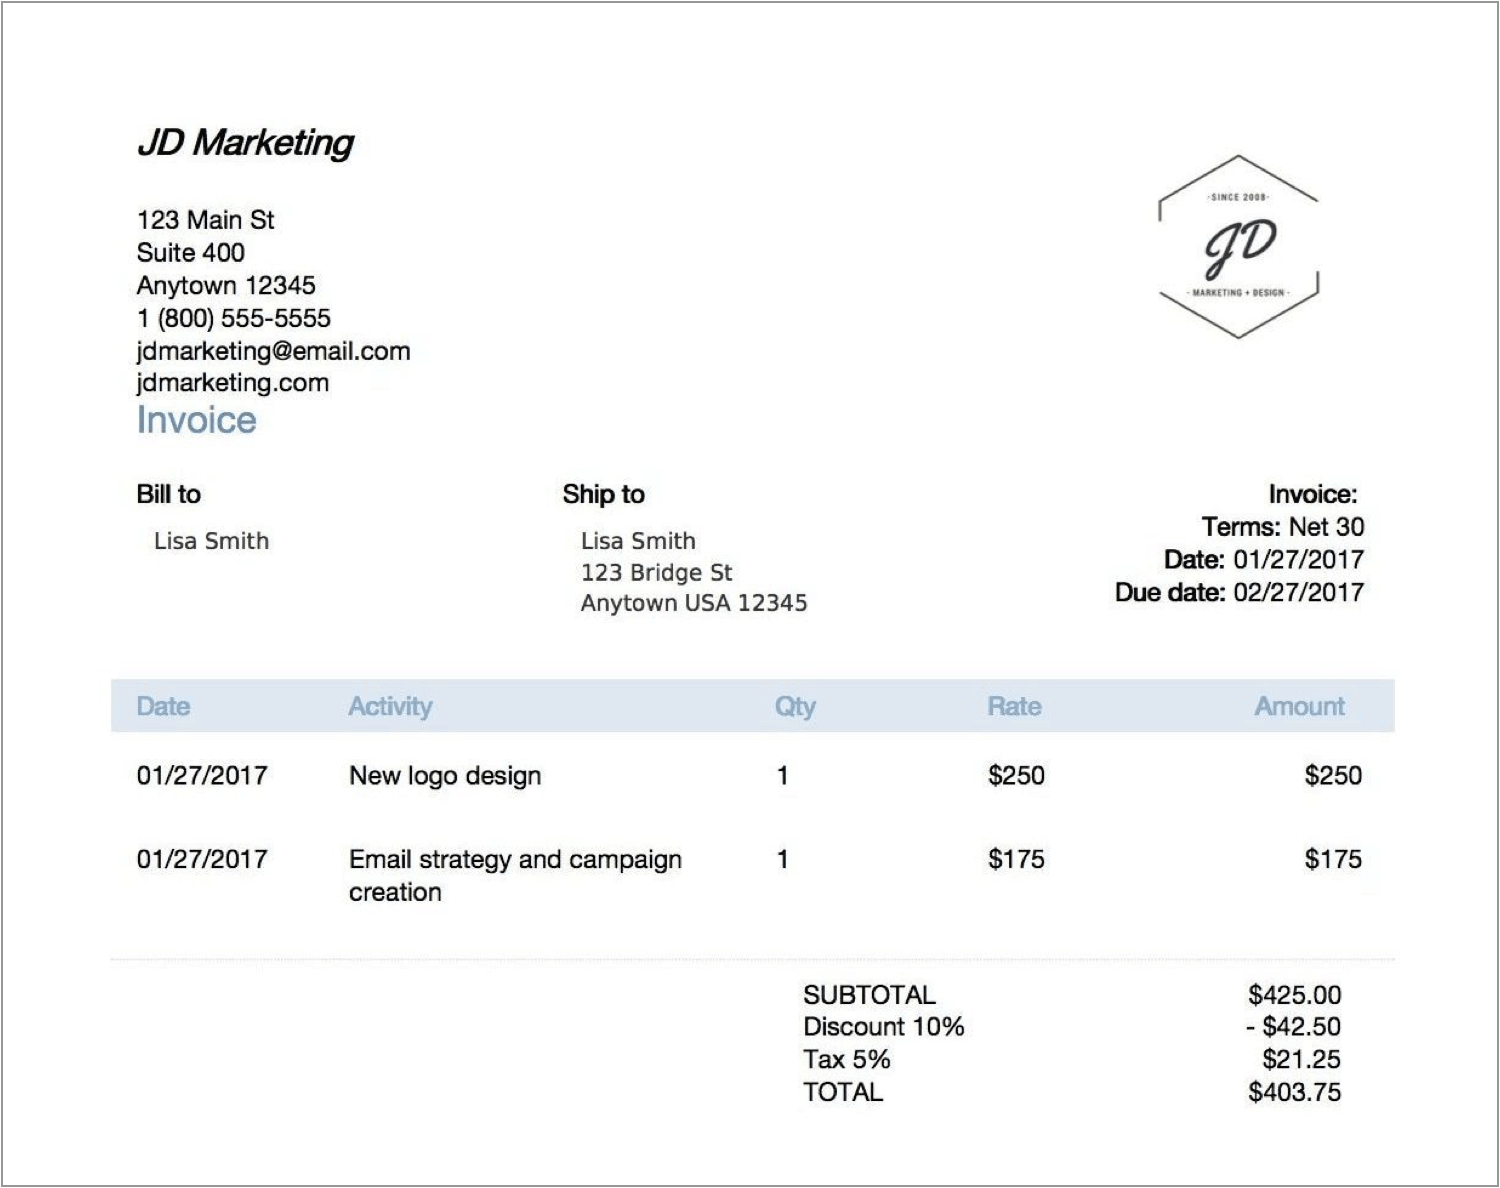 example 2 late fees on invoices